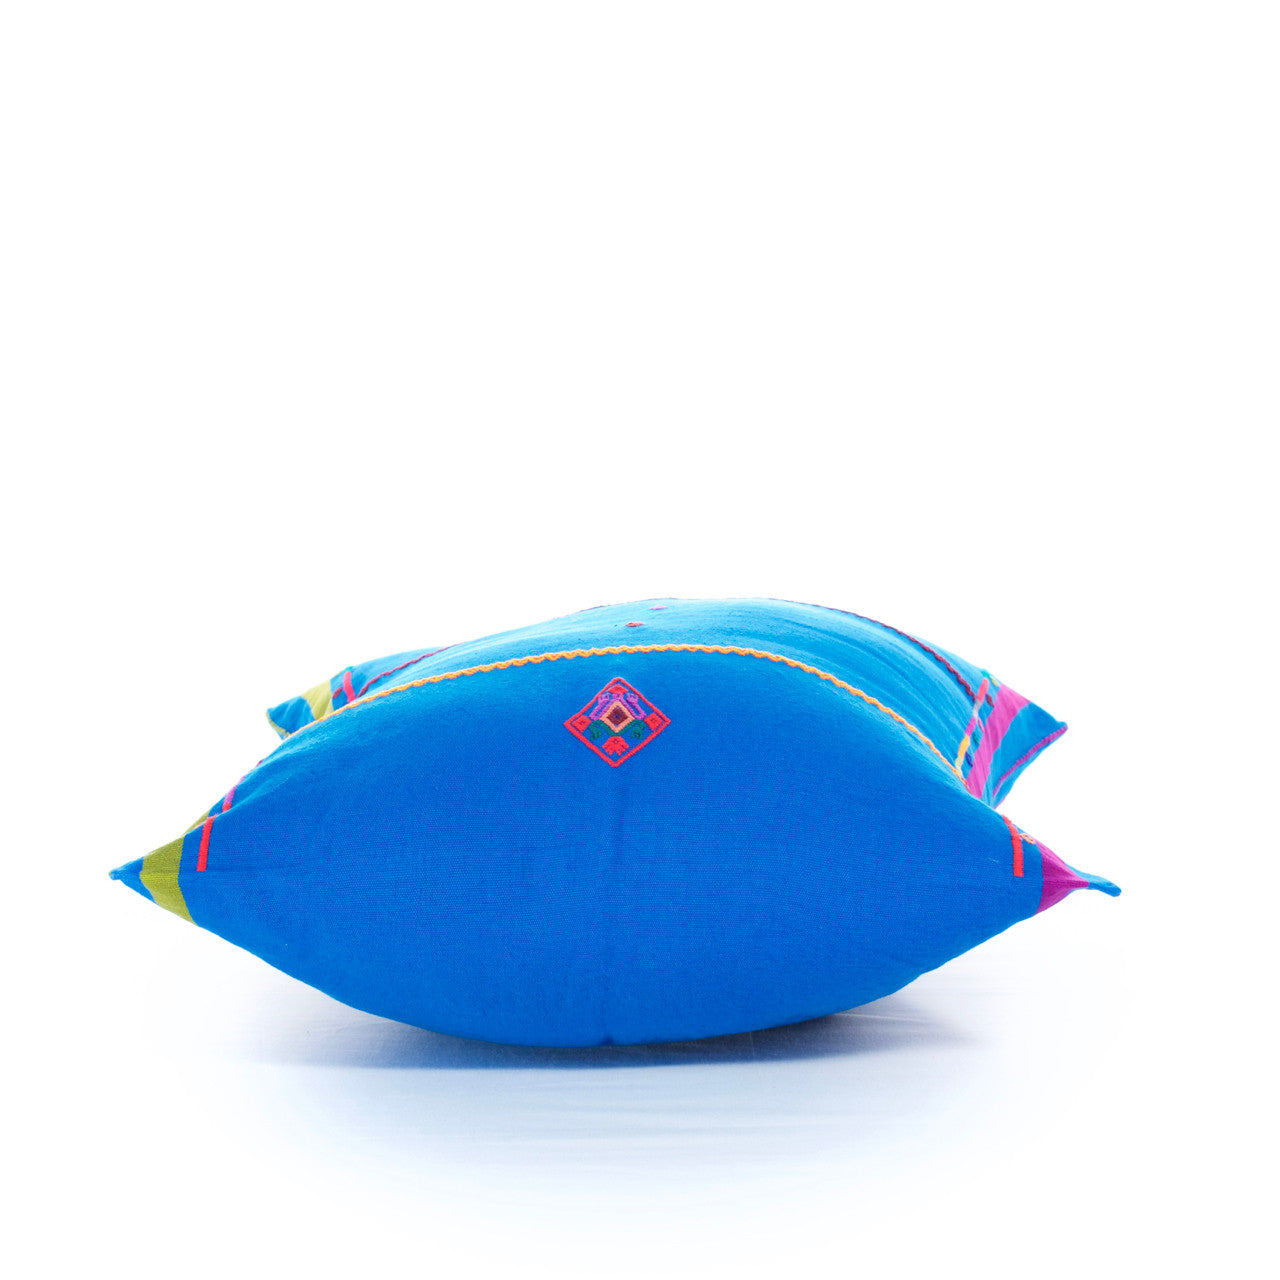 Sapo Cushion - Cielo Collective - Light Blue - 3